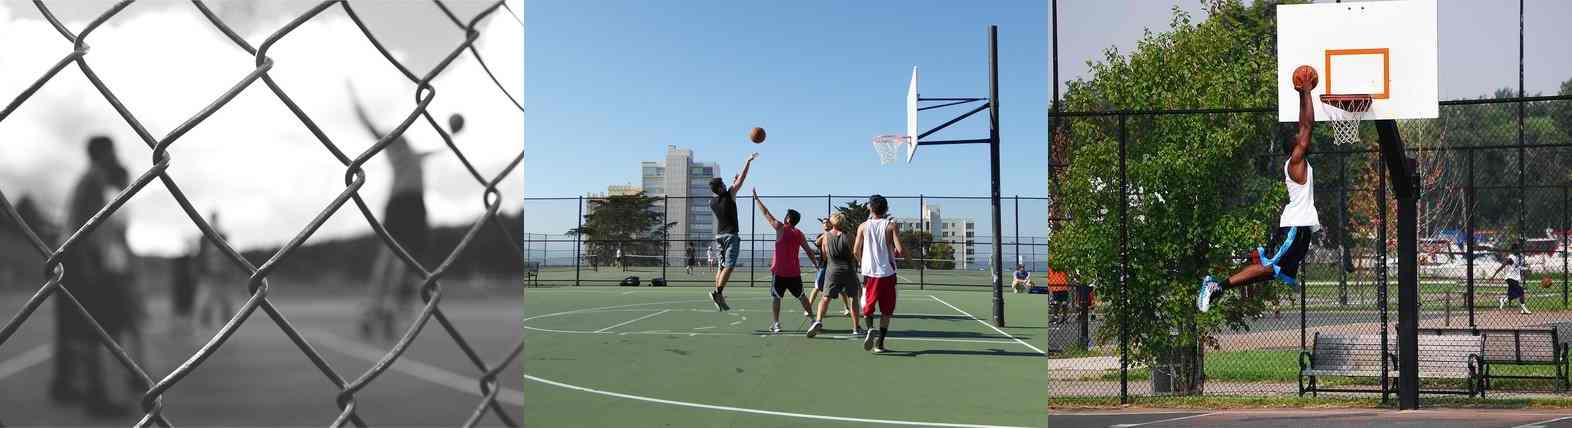 Westchester County Outdoor Basketball Courts, Outdoor Basketball, Outside Basketball, Outdoor Basketball Courts